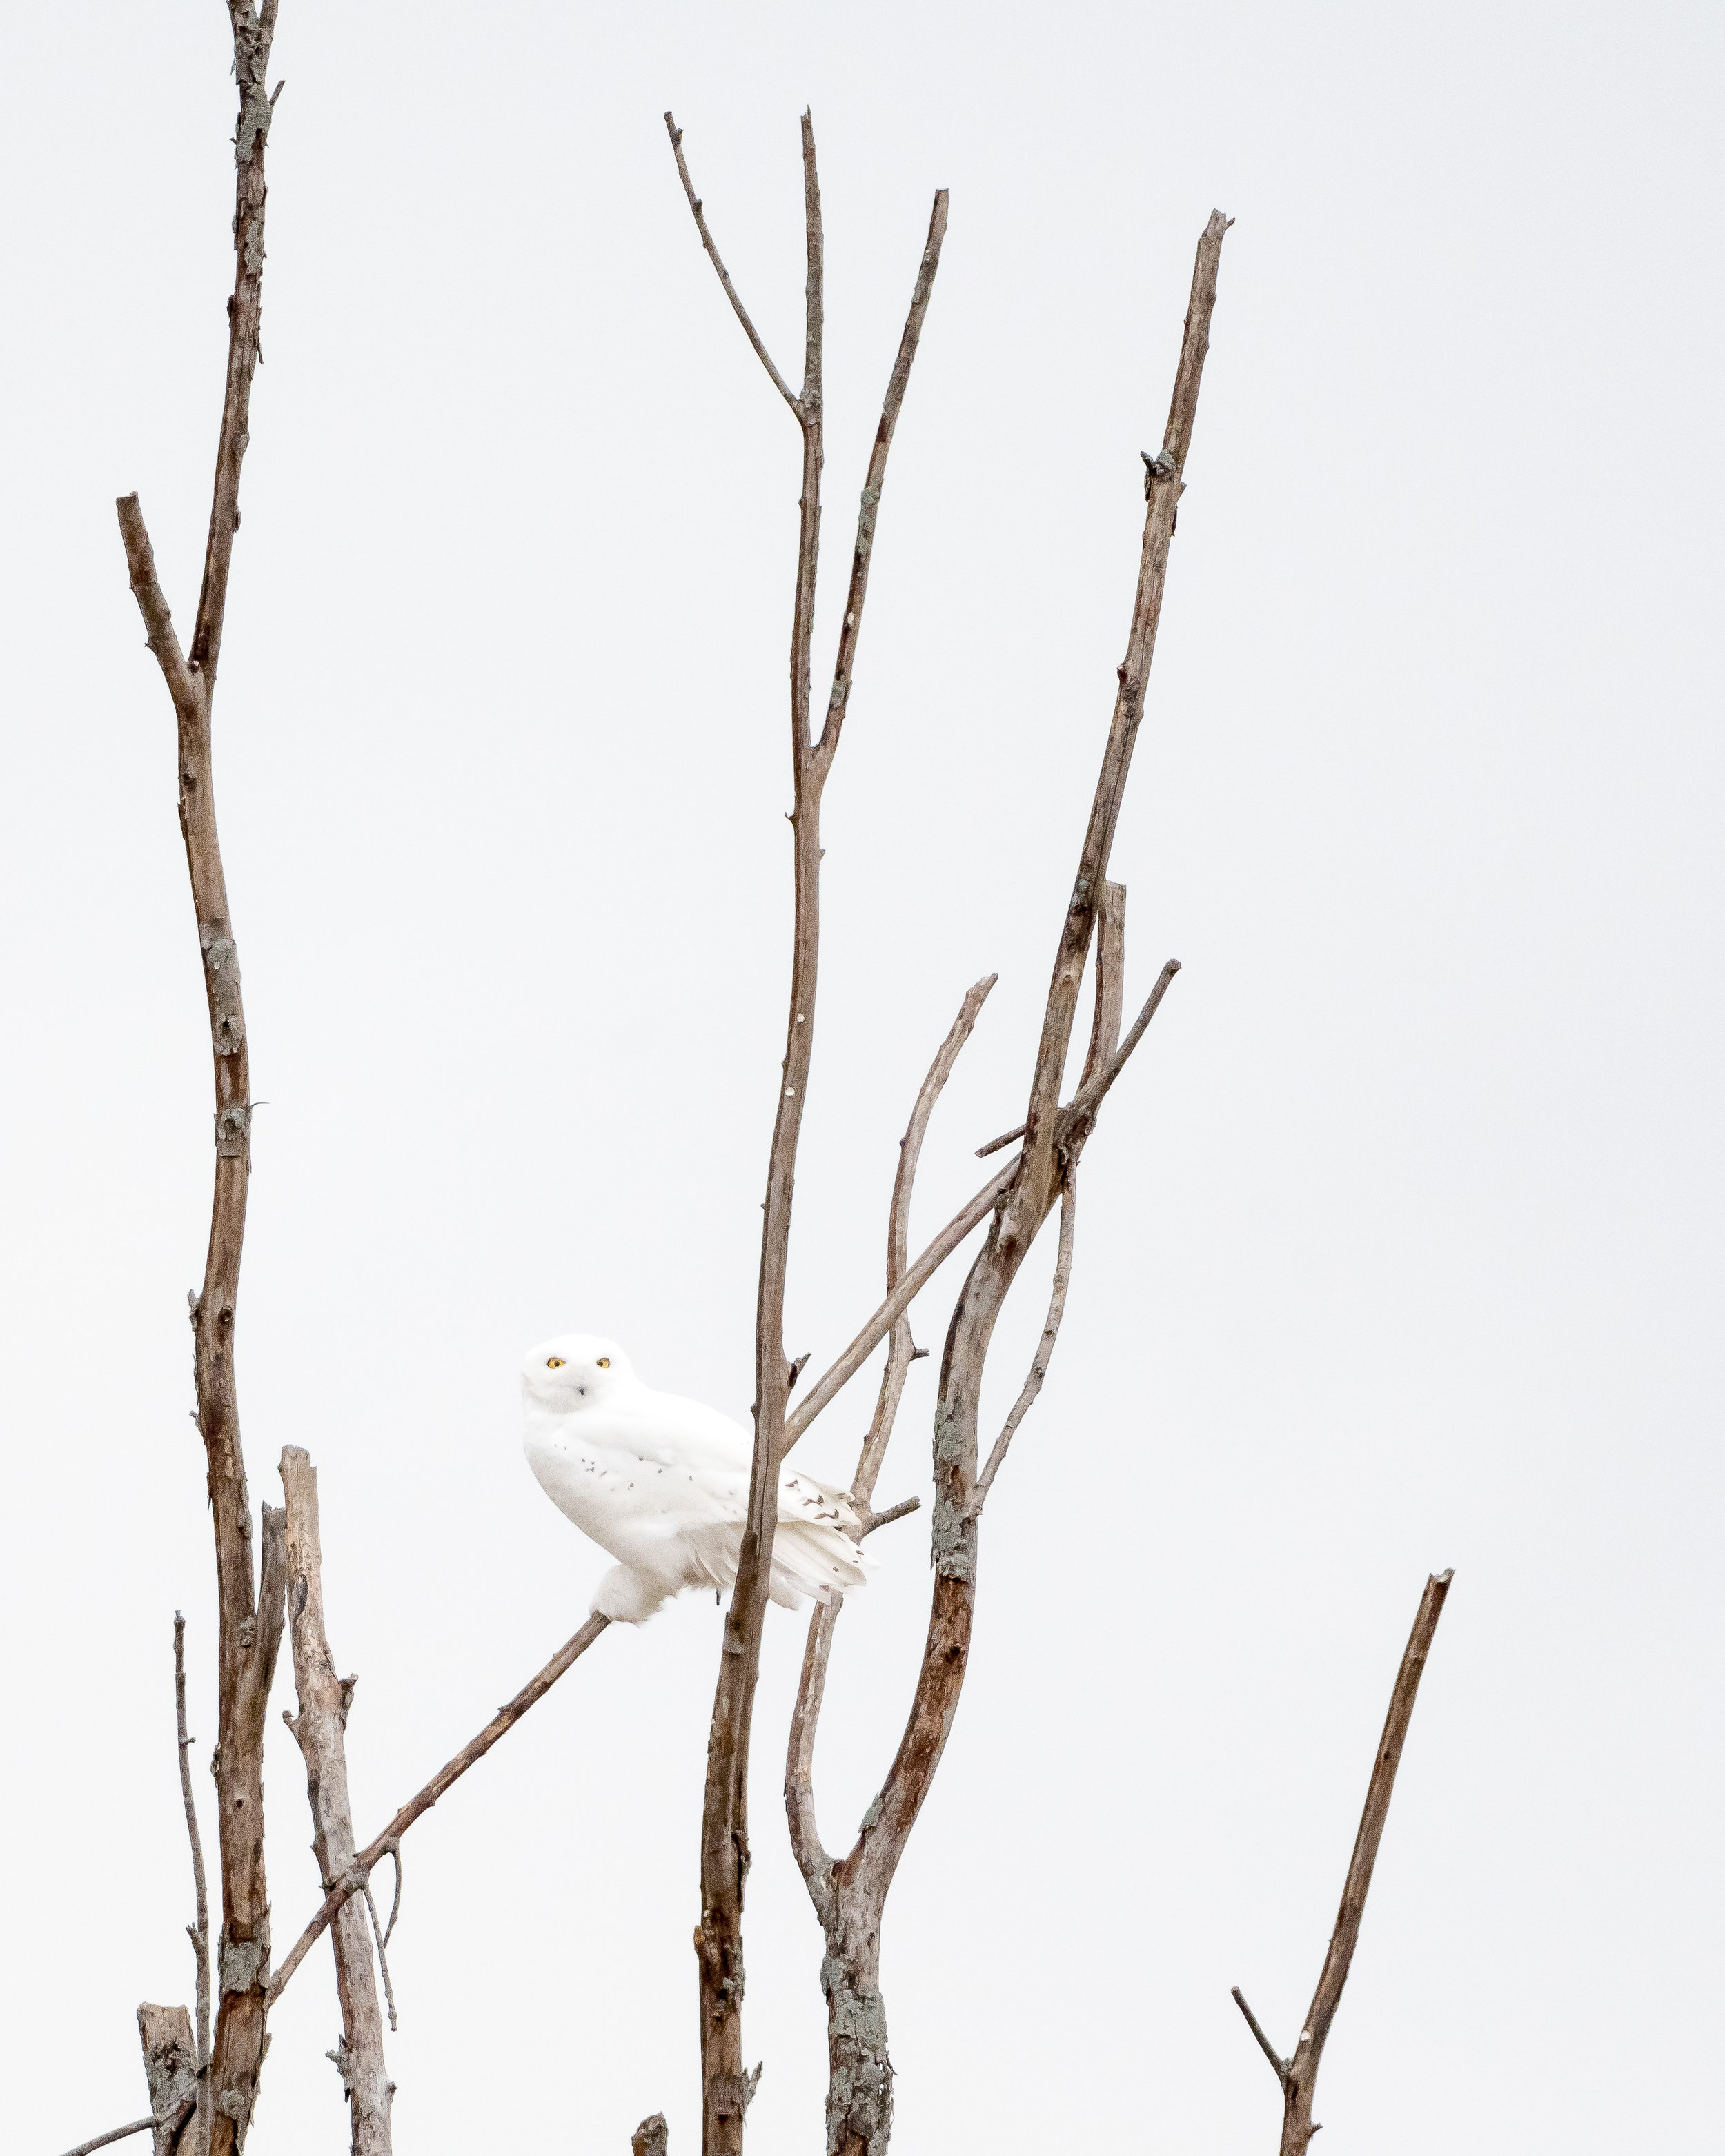 Snowy Owl high up in a dead tree. Nikon D500 - Nikkor 500mm PF f/5.6. Shot with 1.4 tc iii ISO 1600 - 1/640sec